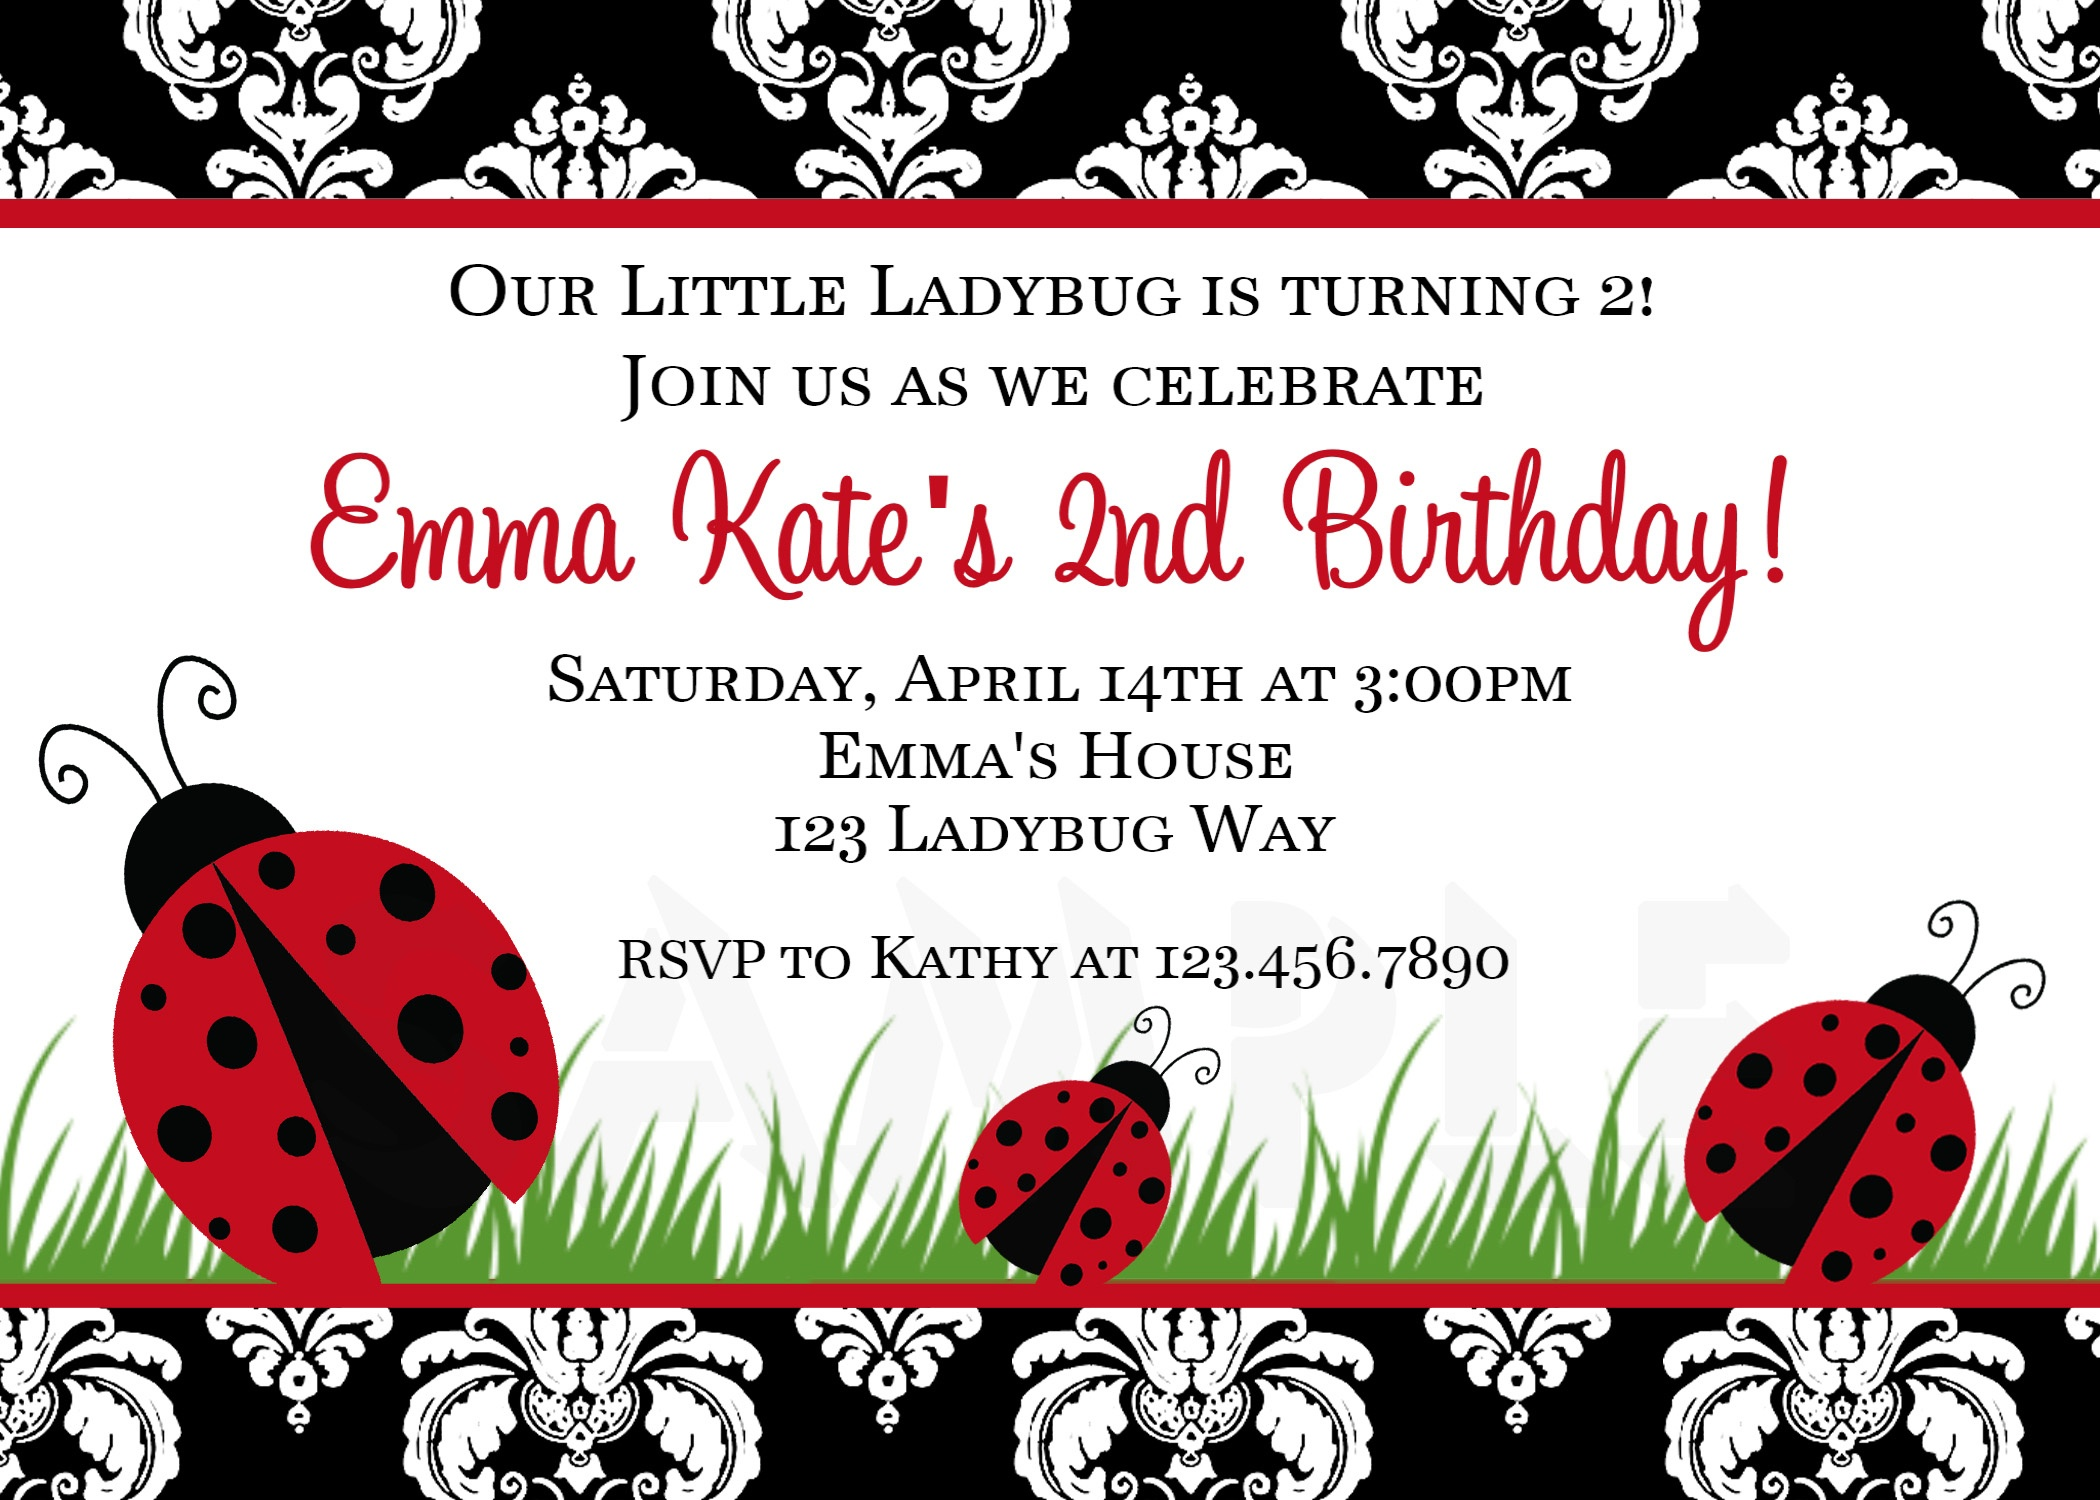 Photo : Printable Birthday Invitations Ladybug Image - Free Printable Ladybug Invitations